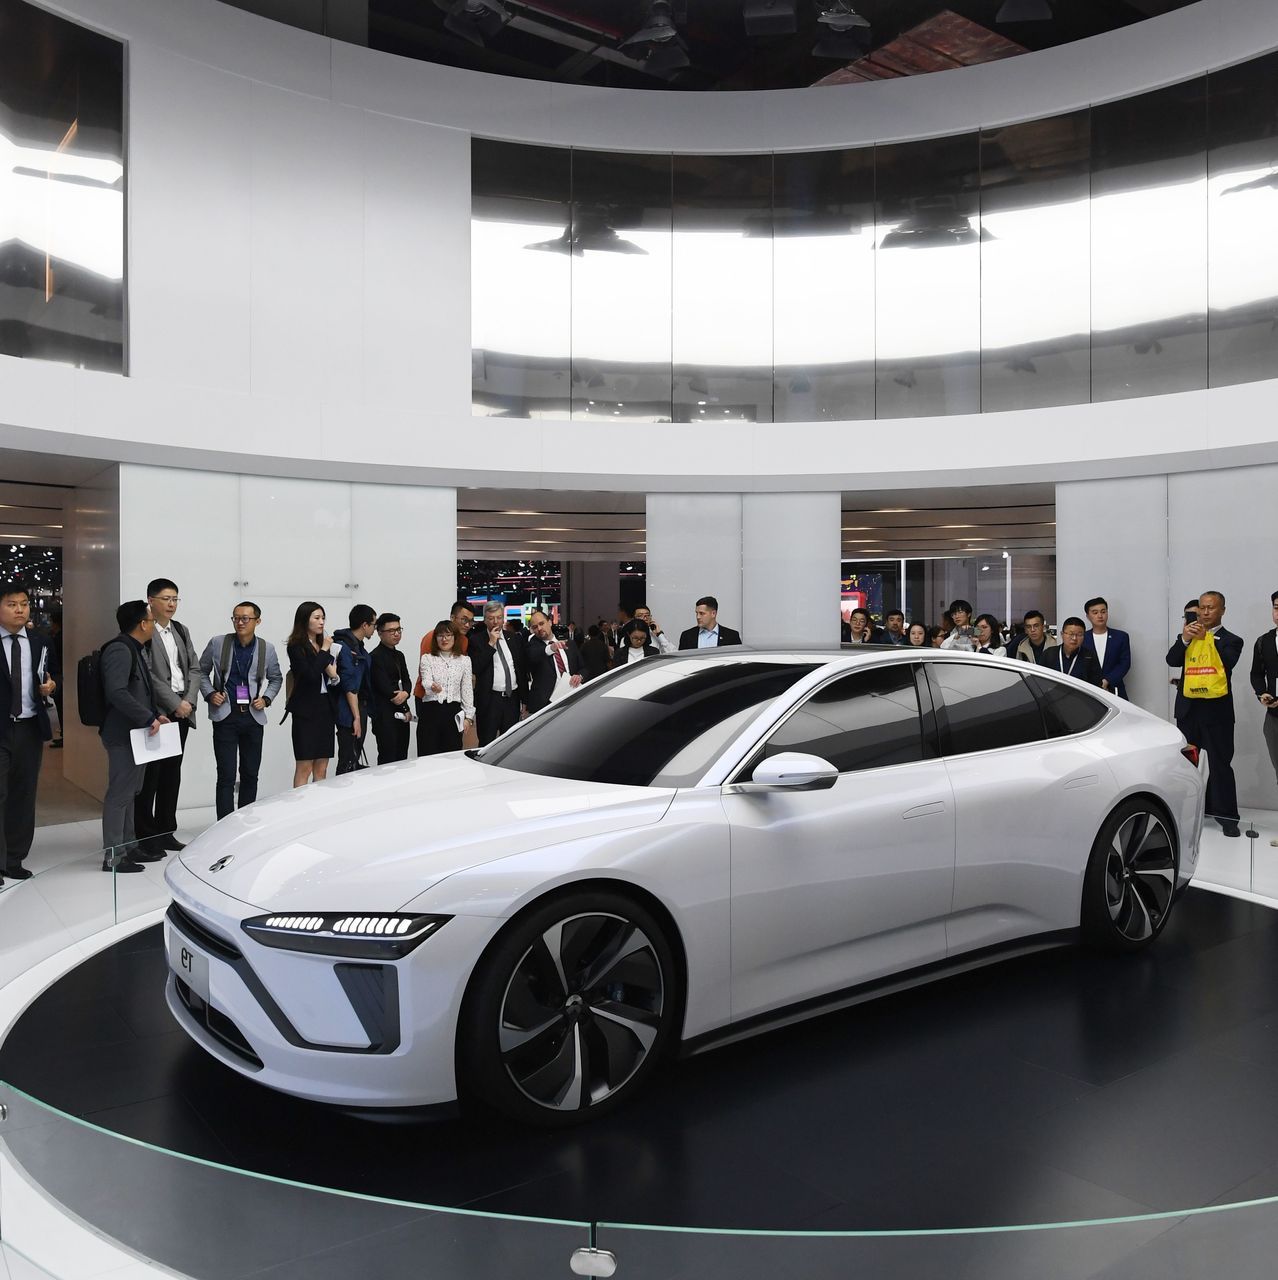 Nio S Quarterly Loss Narrows More Than Expected But Stock Swings To Losses Marketwatch